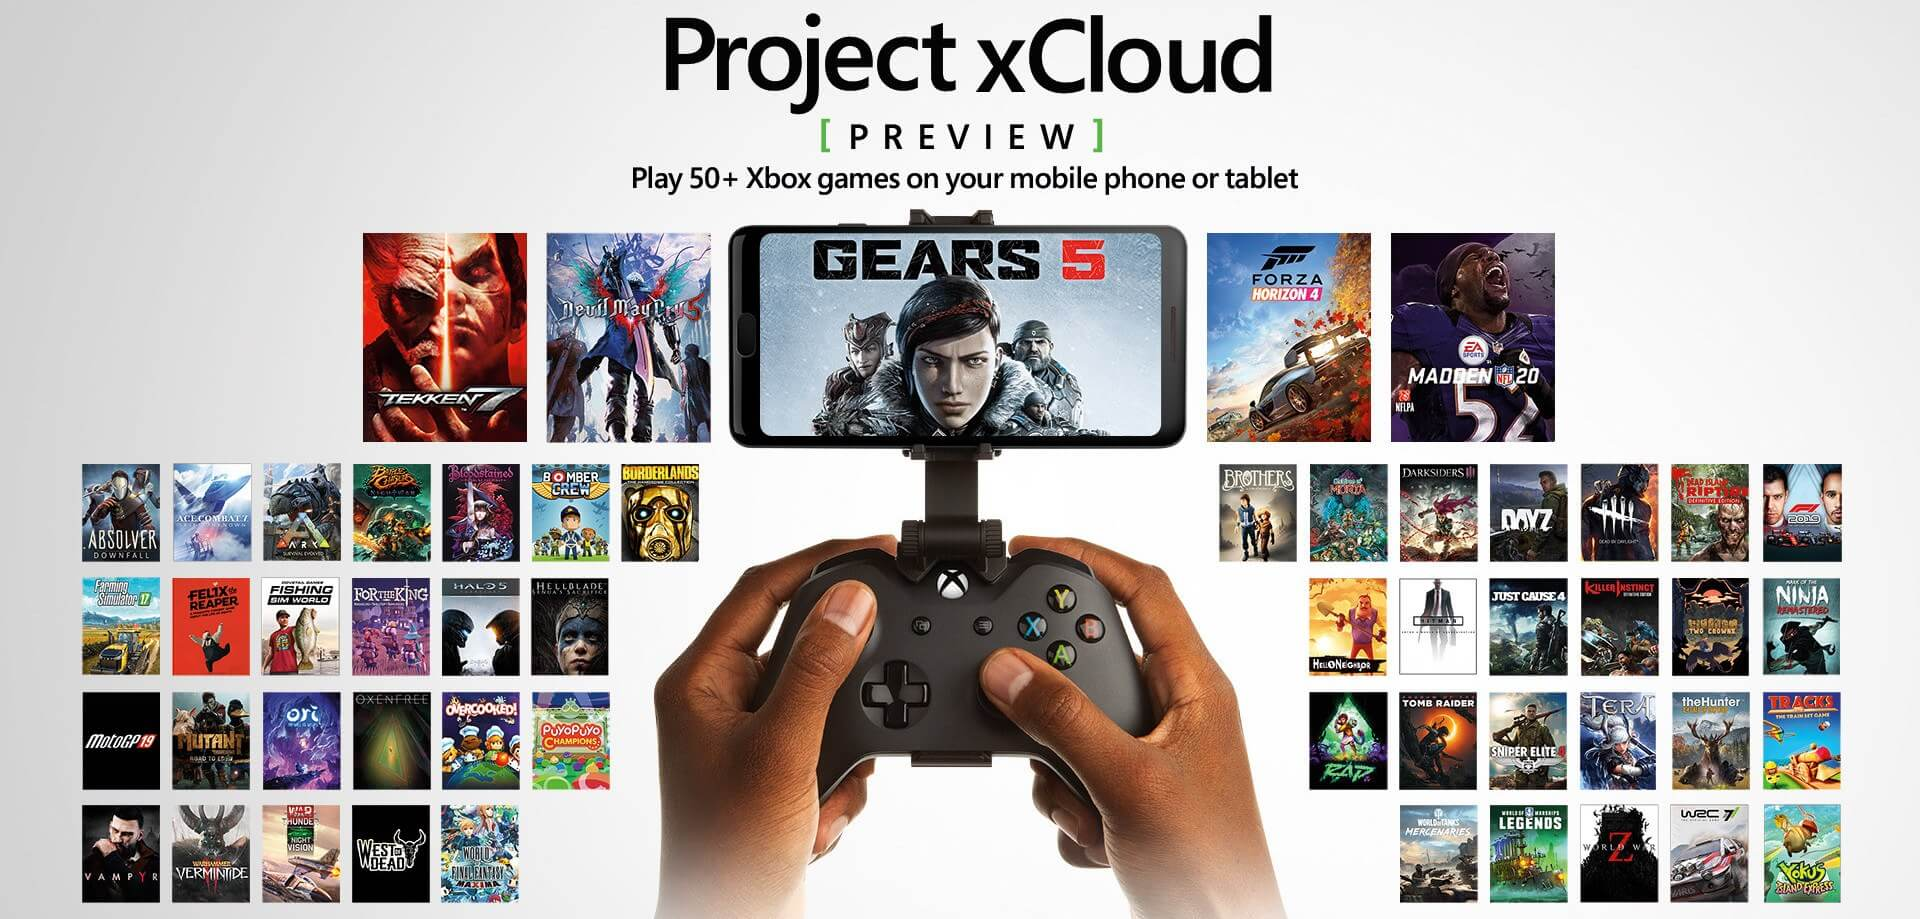 Games Coming Out October 2020.Microsoft Xcloud Preview Adds 50 Games And Shoots For A 2020